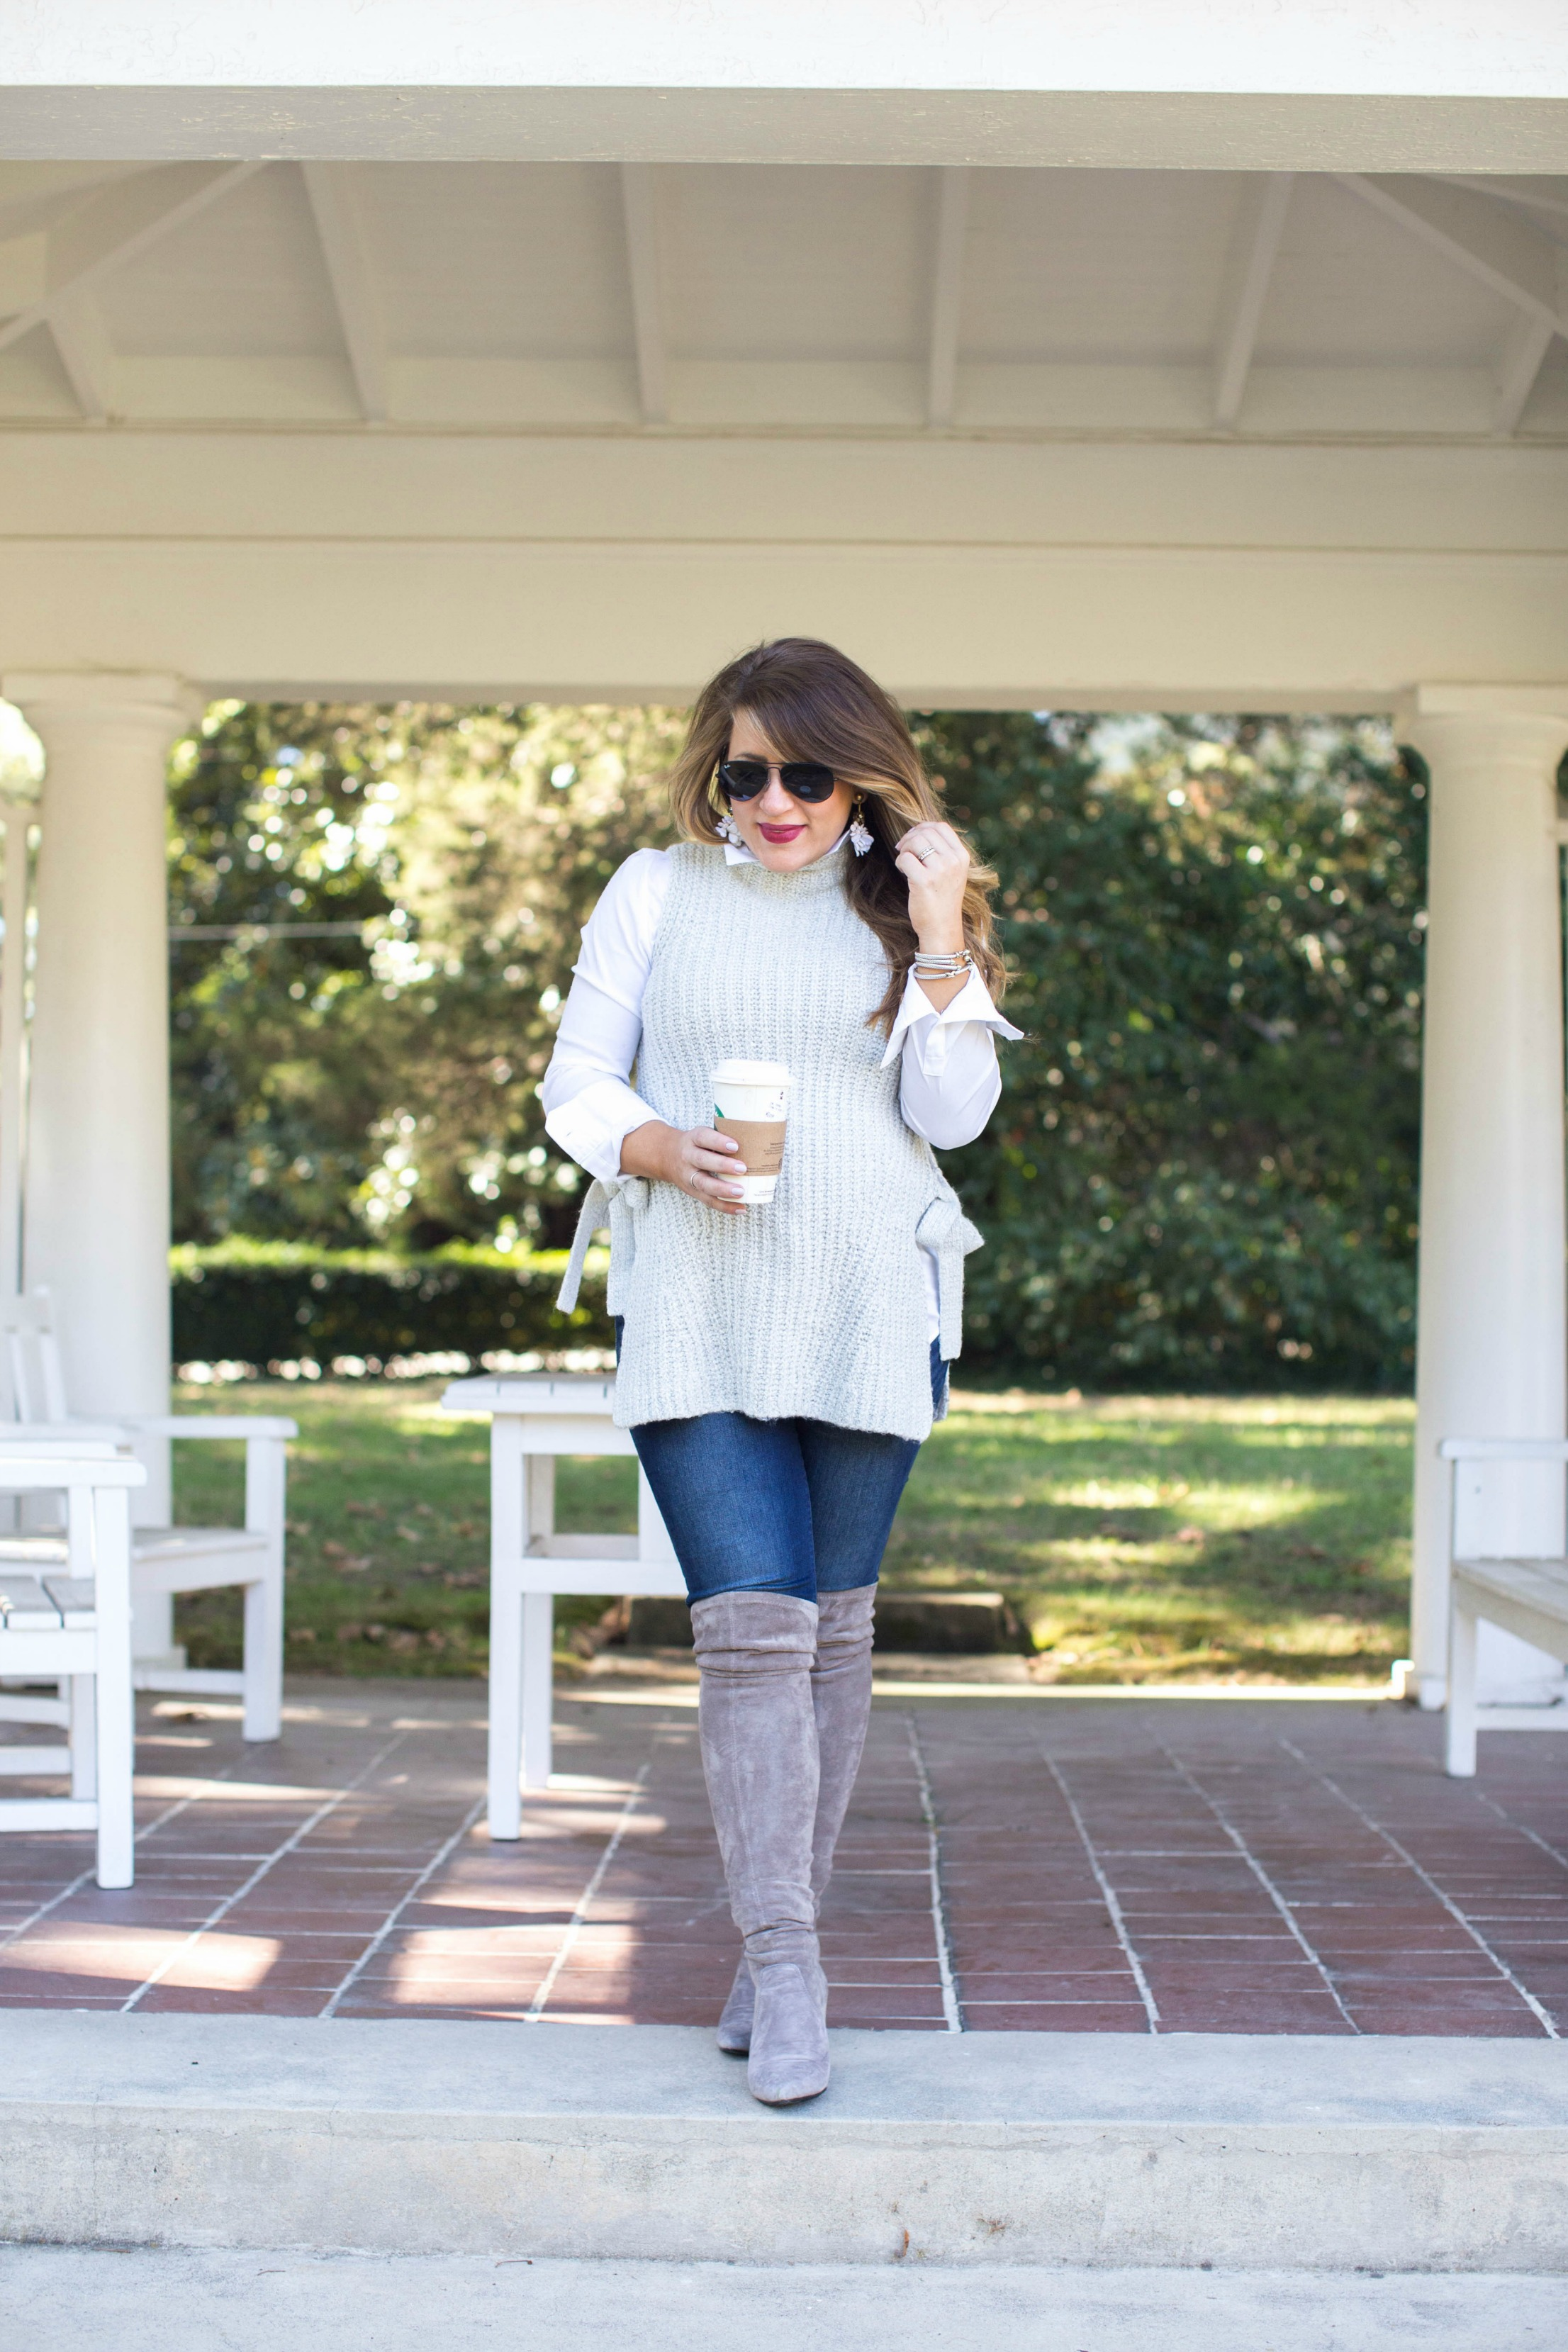 Fall Fashion: Gray Layers by North Carolina fashion blogger Coffee Beans and Bobby Pins